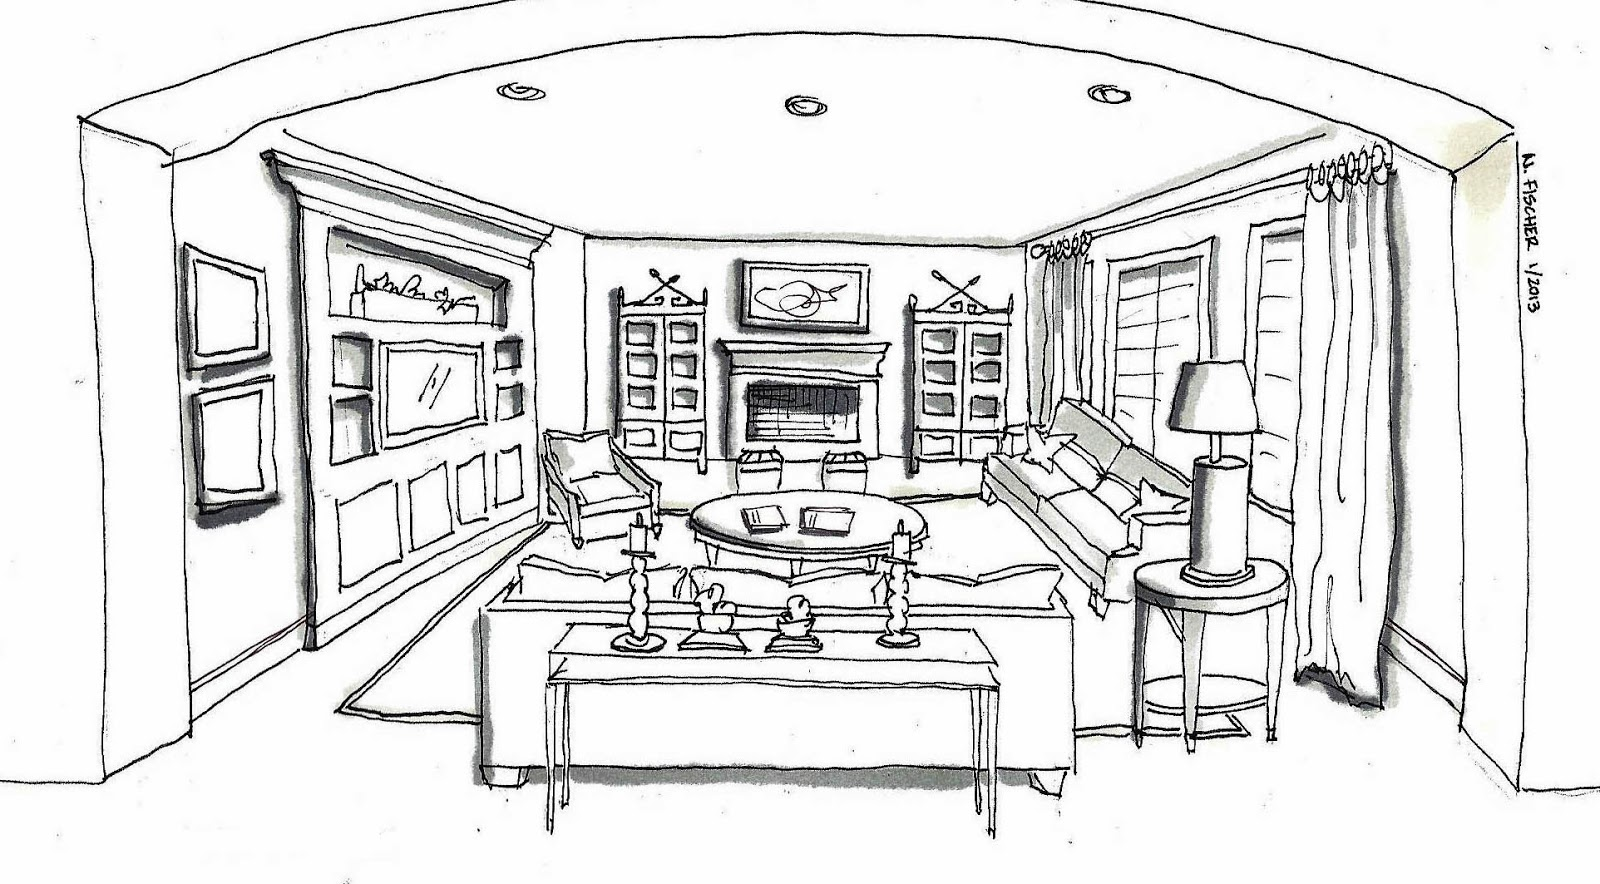 Living room interior design sketch 2017 2018 best cars Room sketches interior design